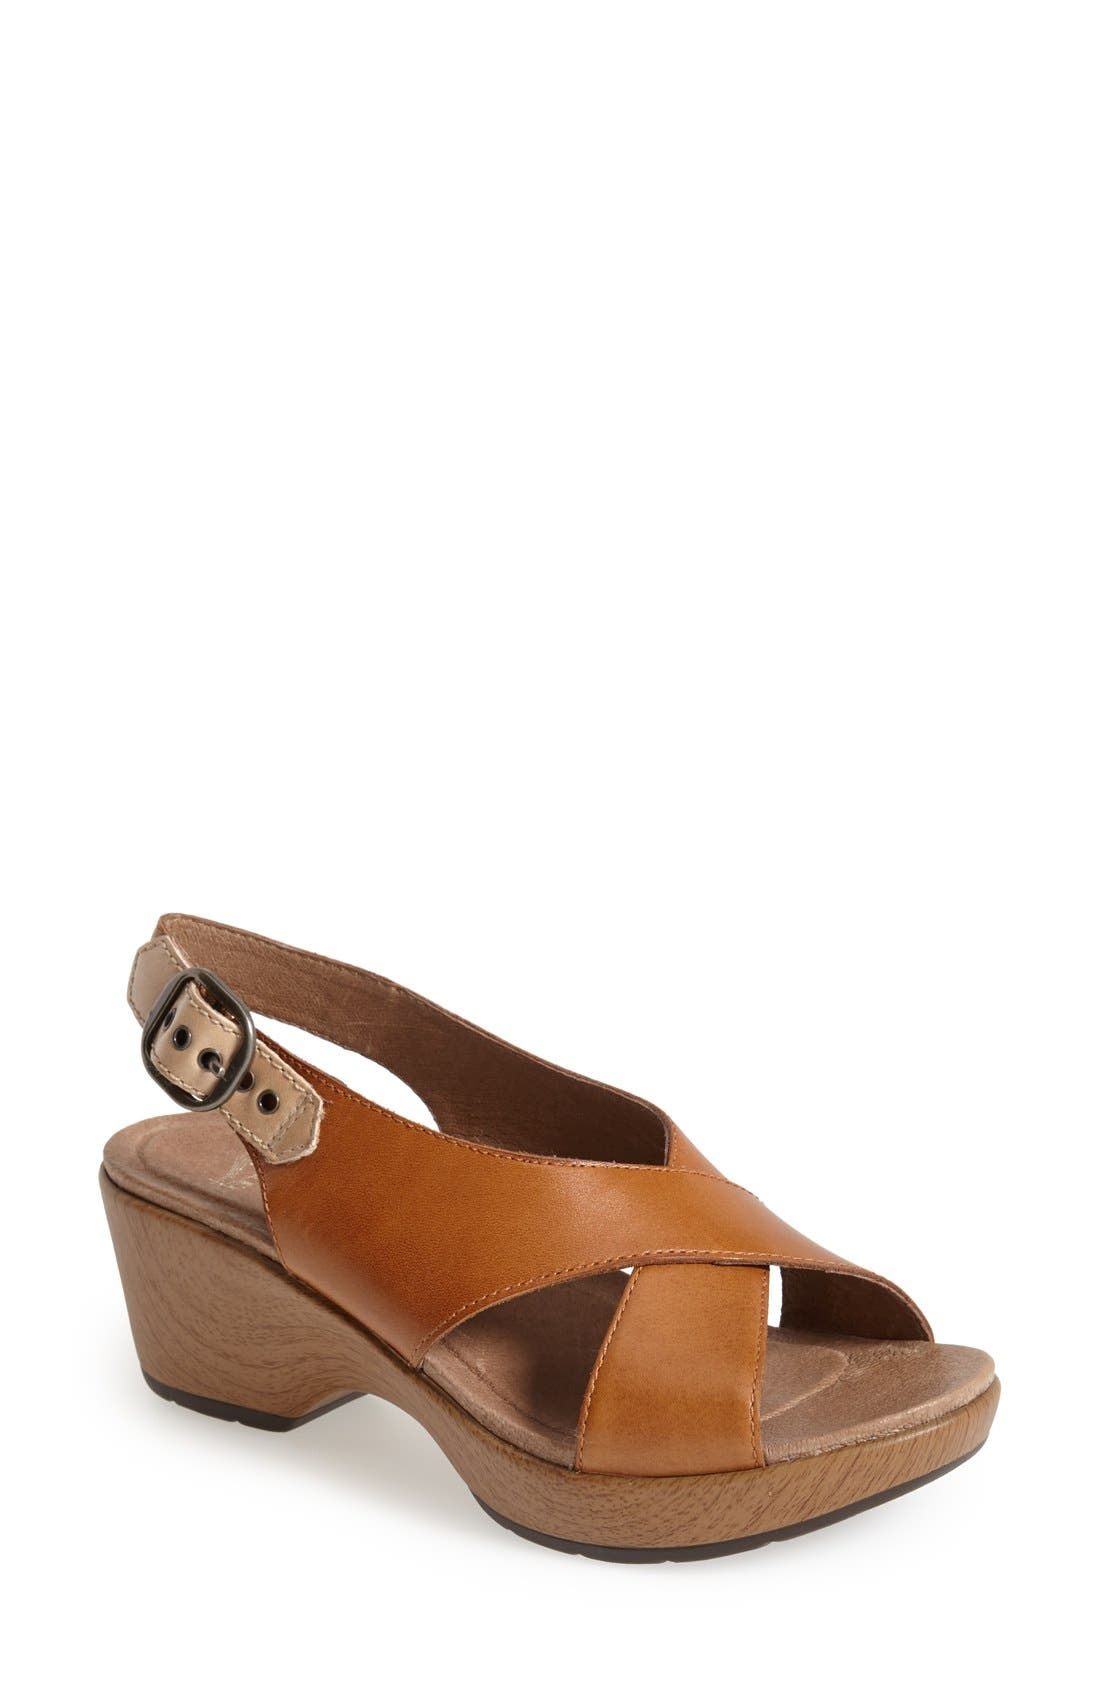 'Jacinda' Sandal,                         Main,                         color, Caramel